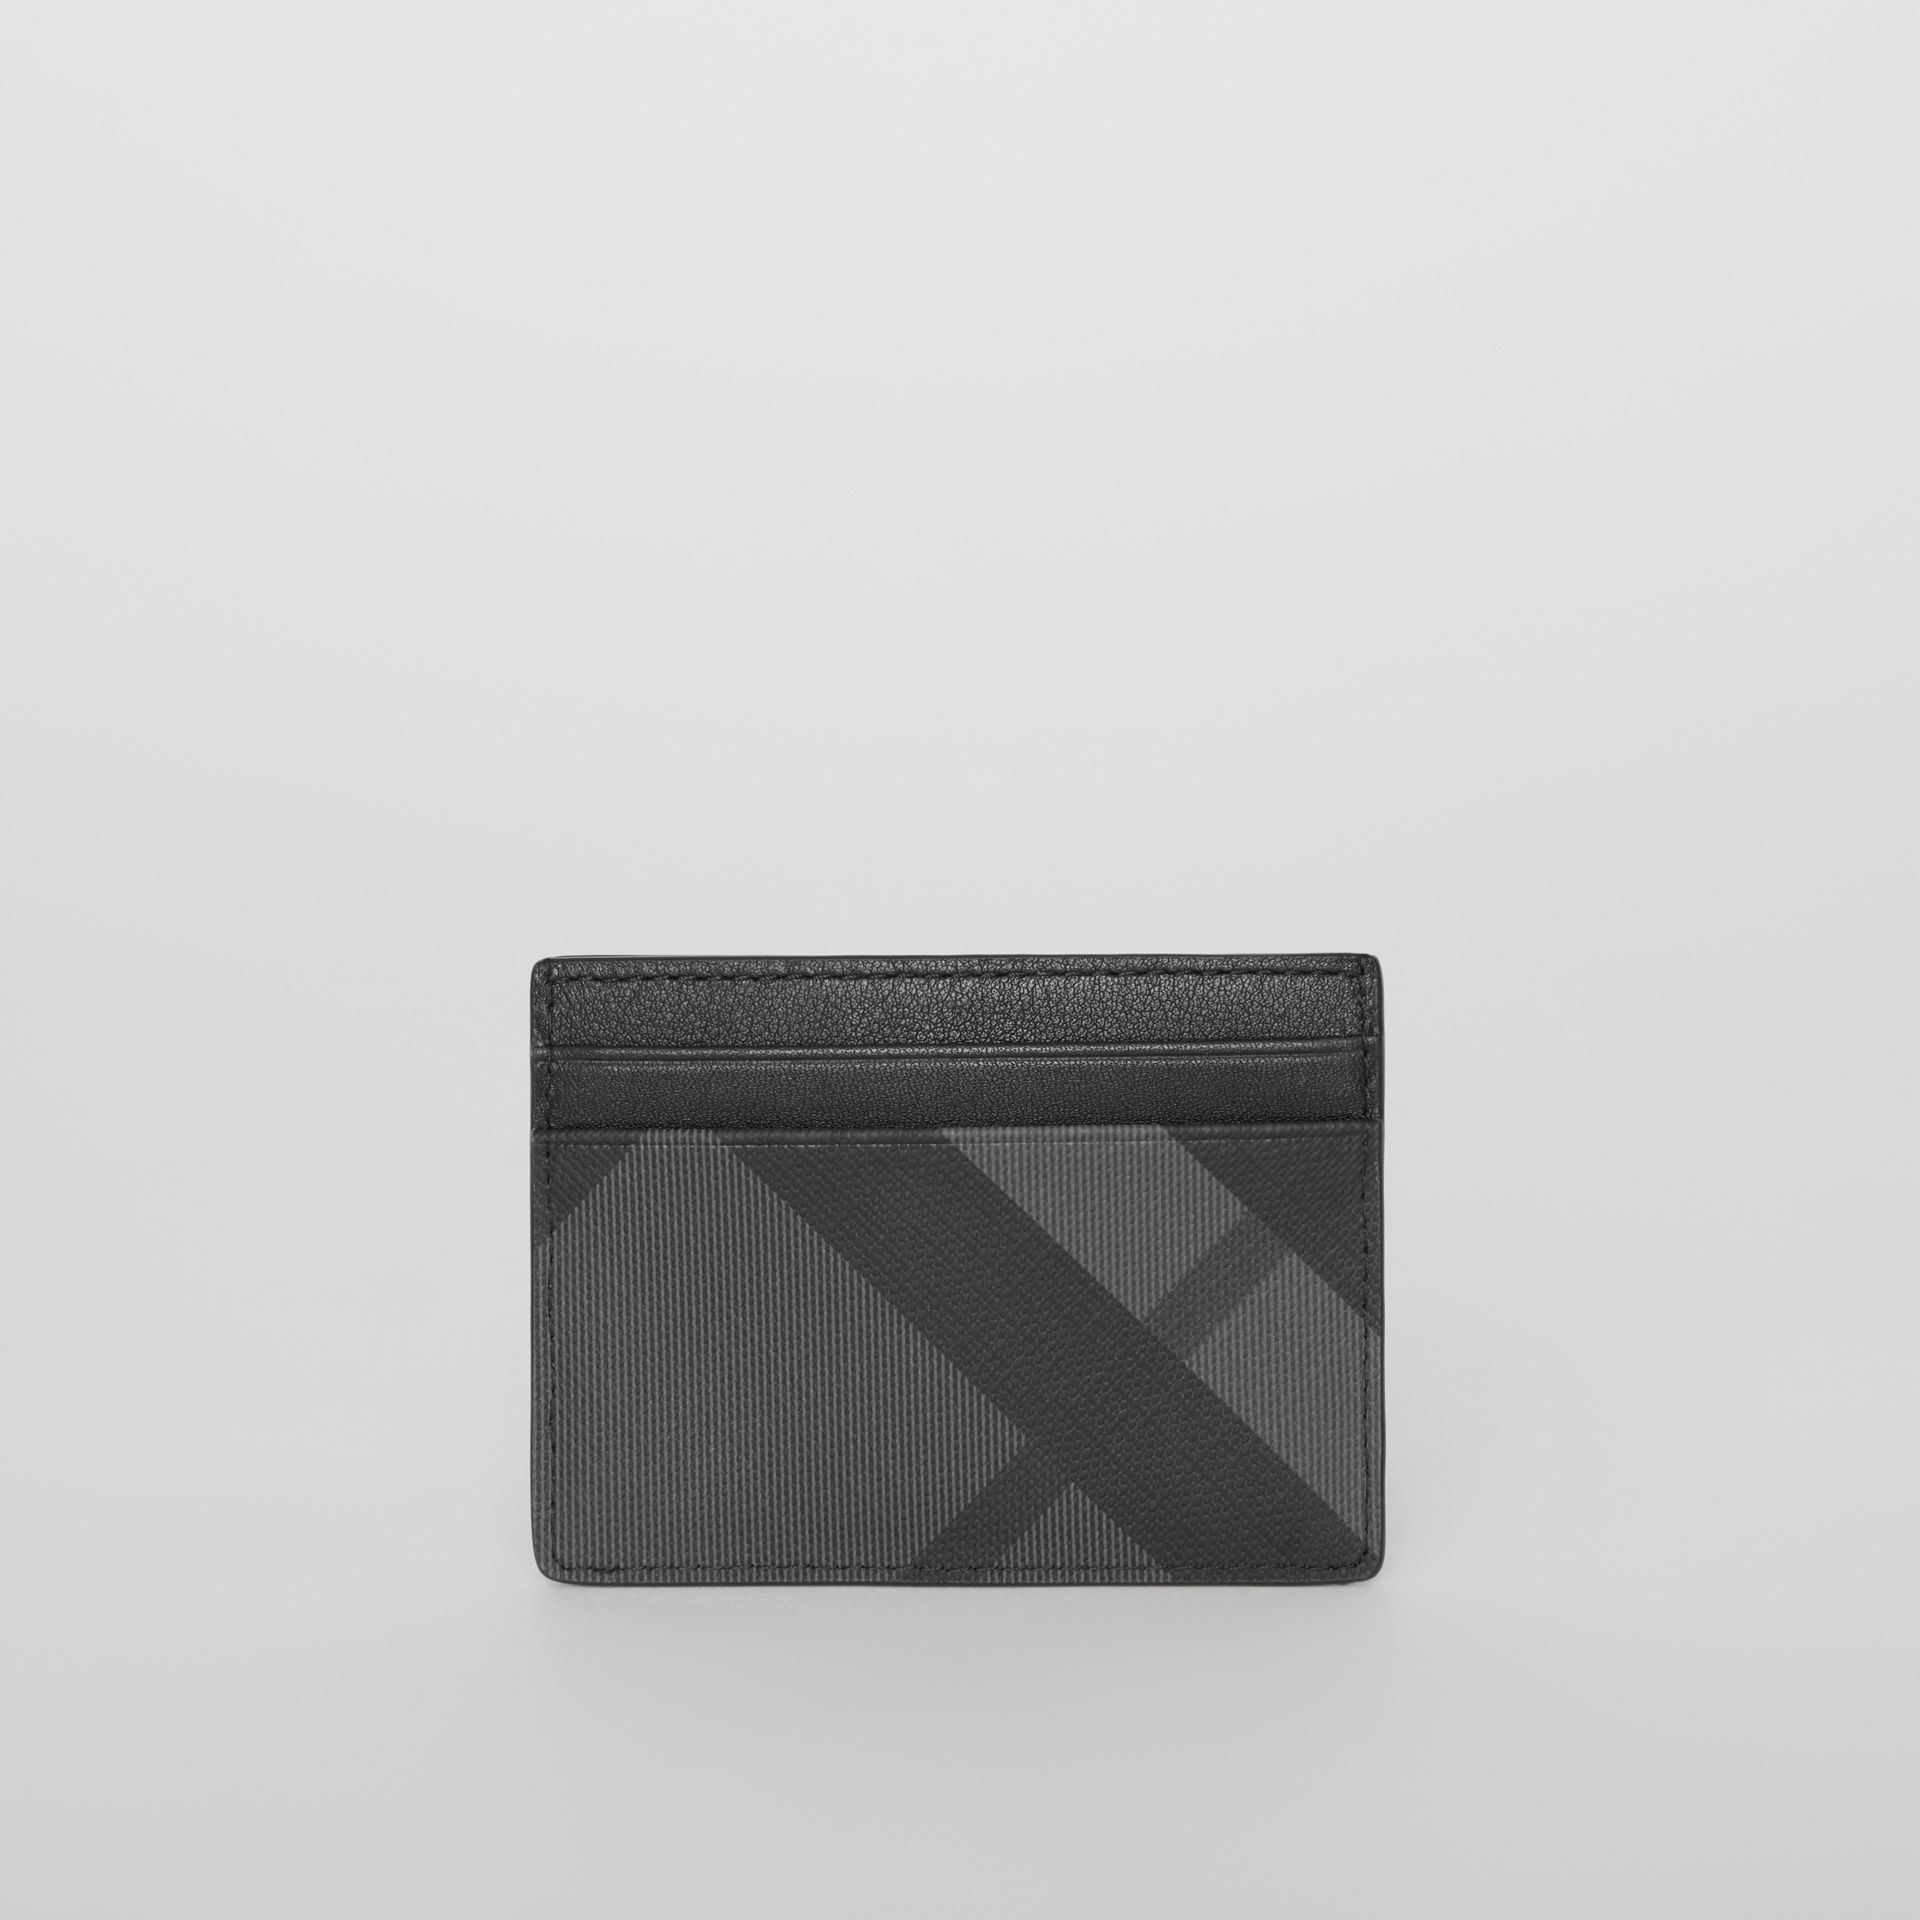 EKD London Check and Leather Card Case in Charcoal/black - Men | Burberry United Kingdom - gallery image 4